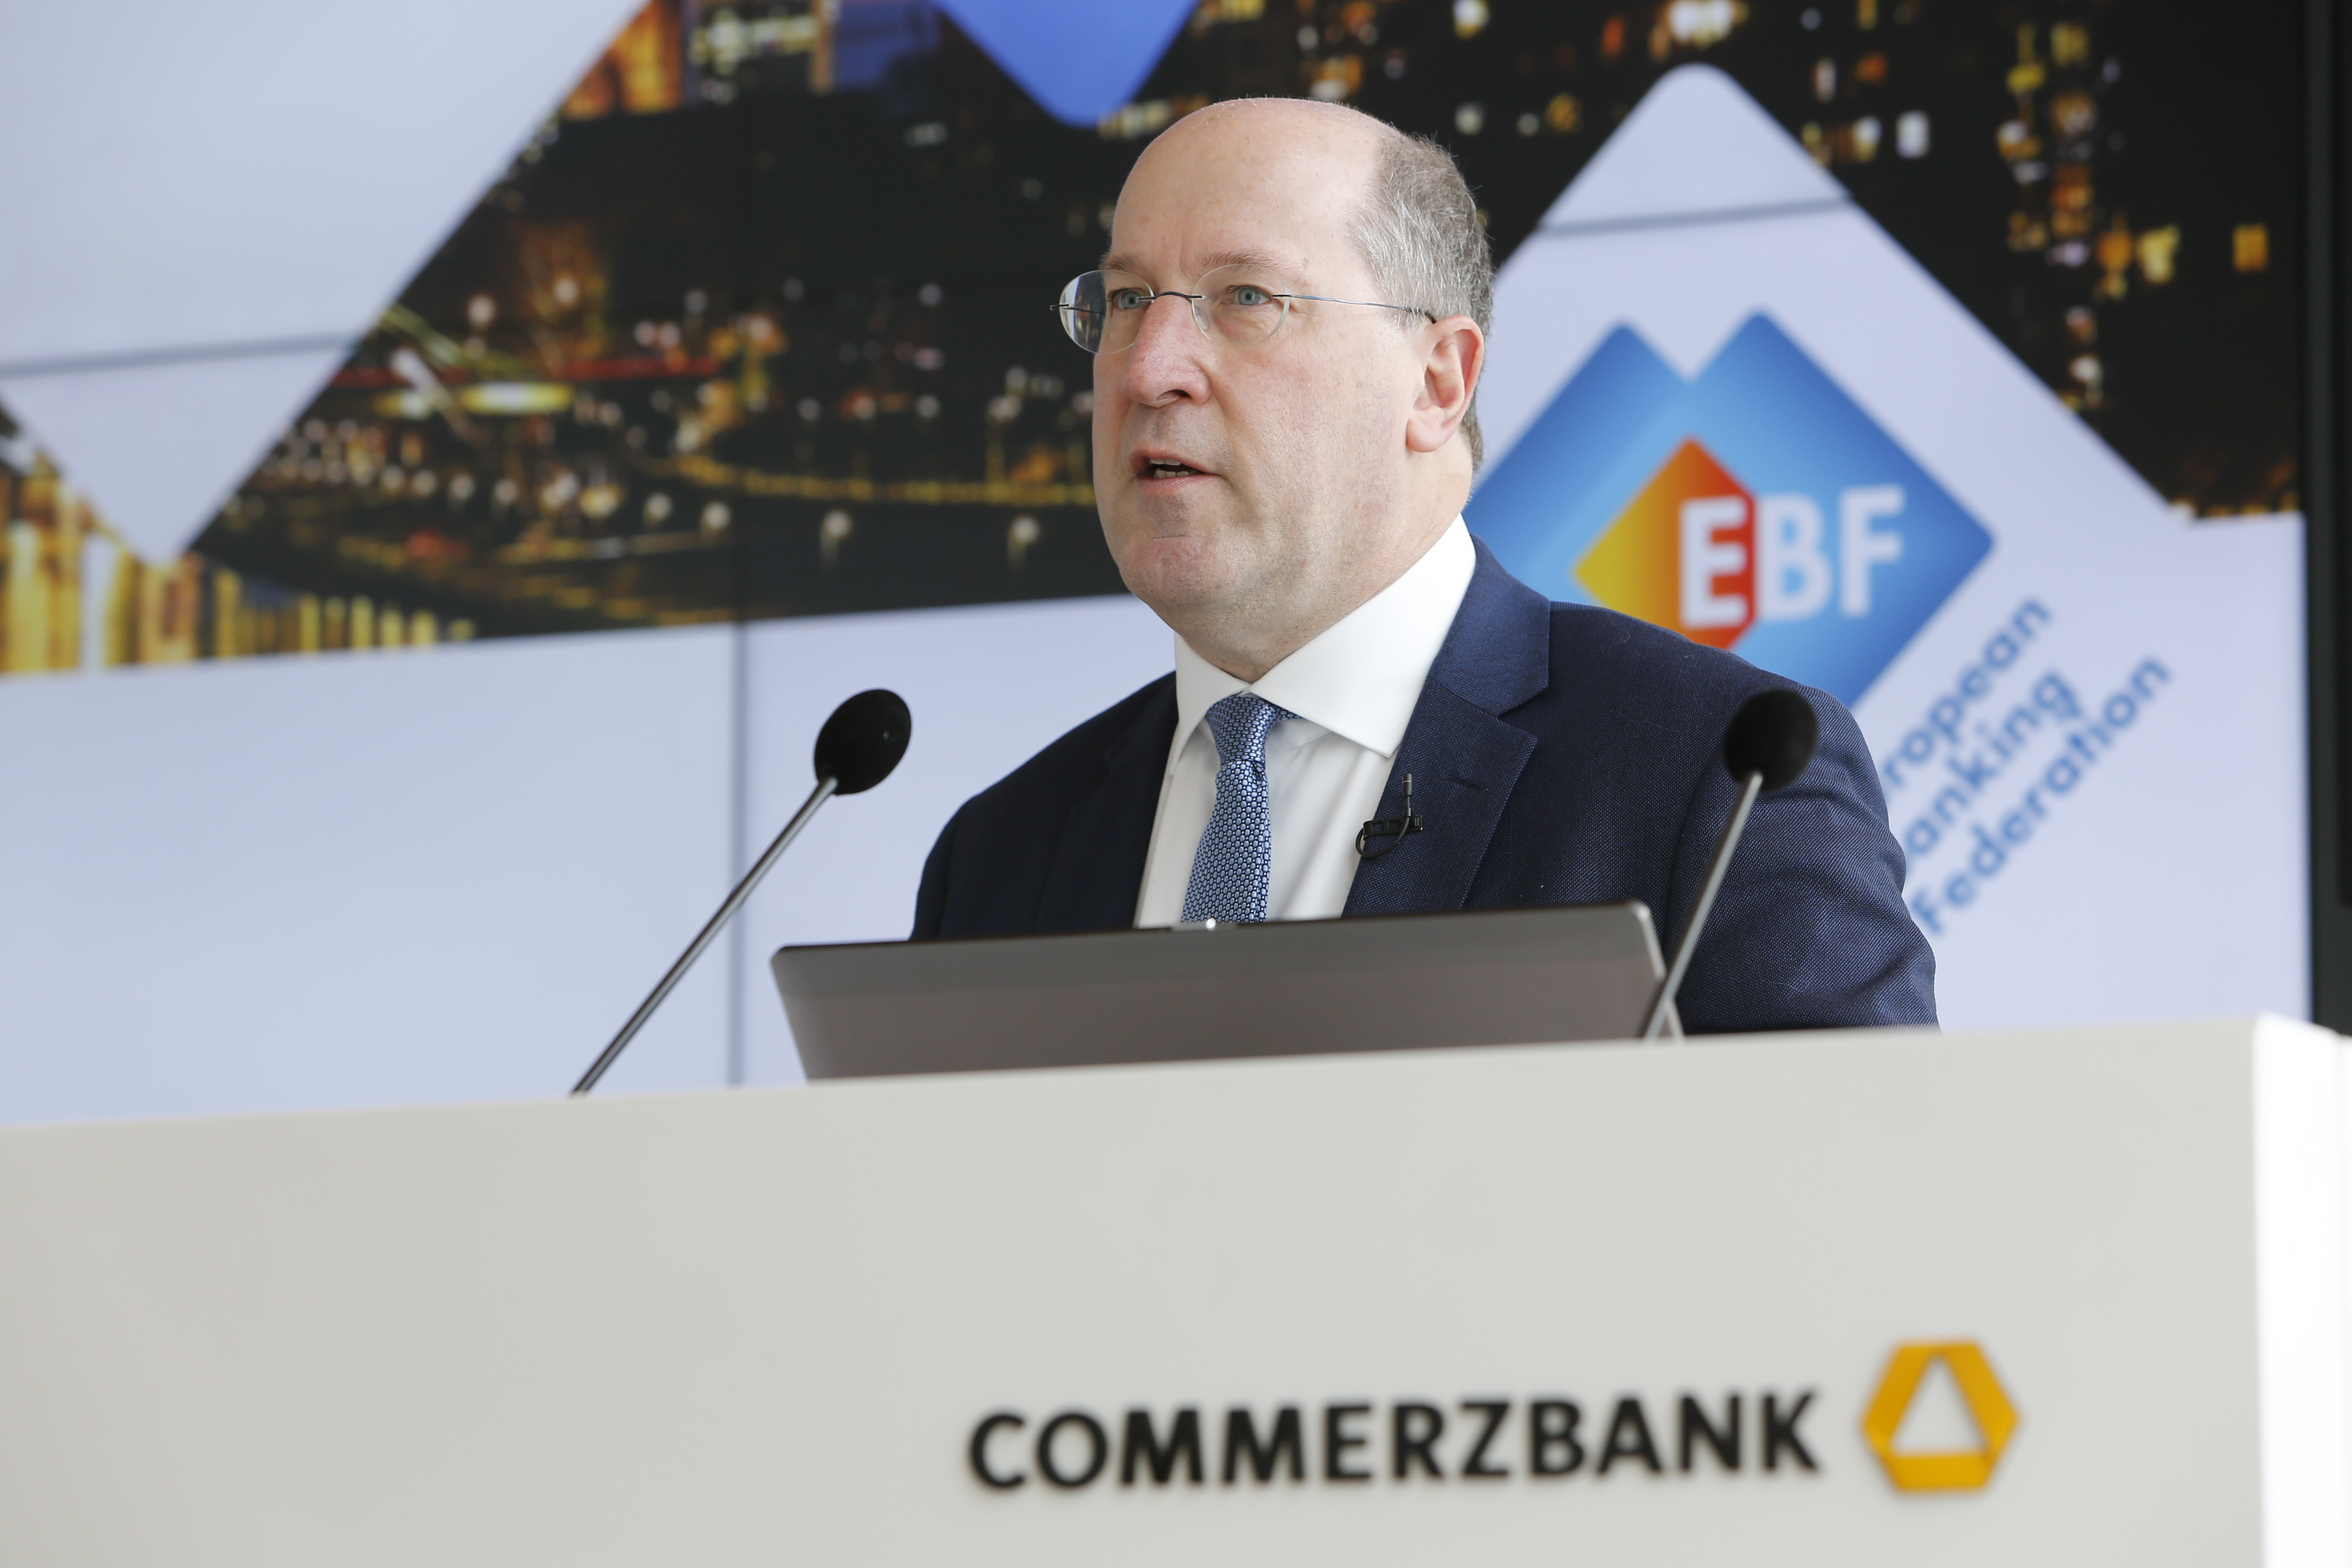 Introduction by Wim Mijs, Chief Executive Officer of the European Banking Federation